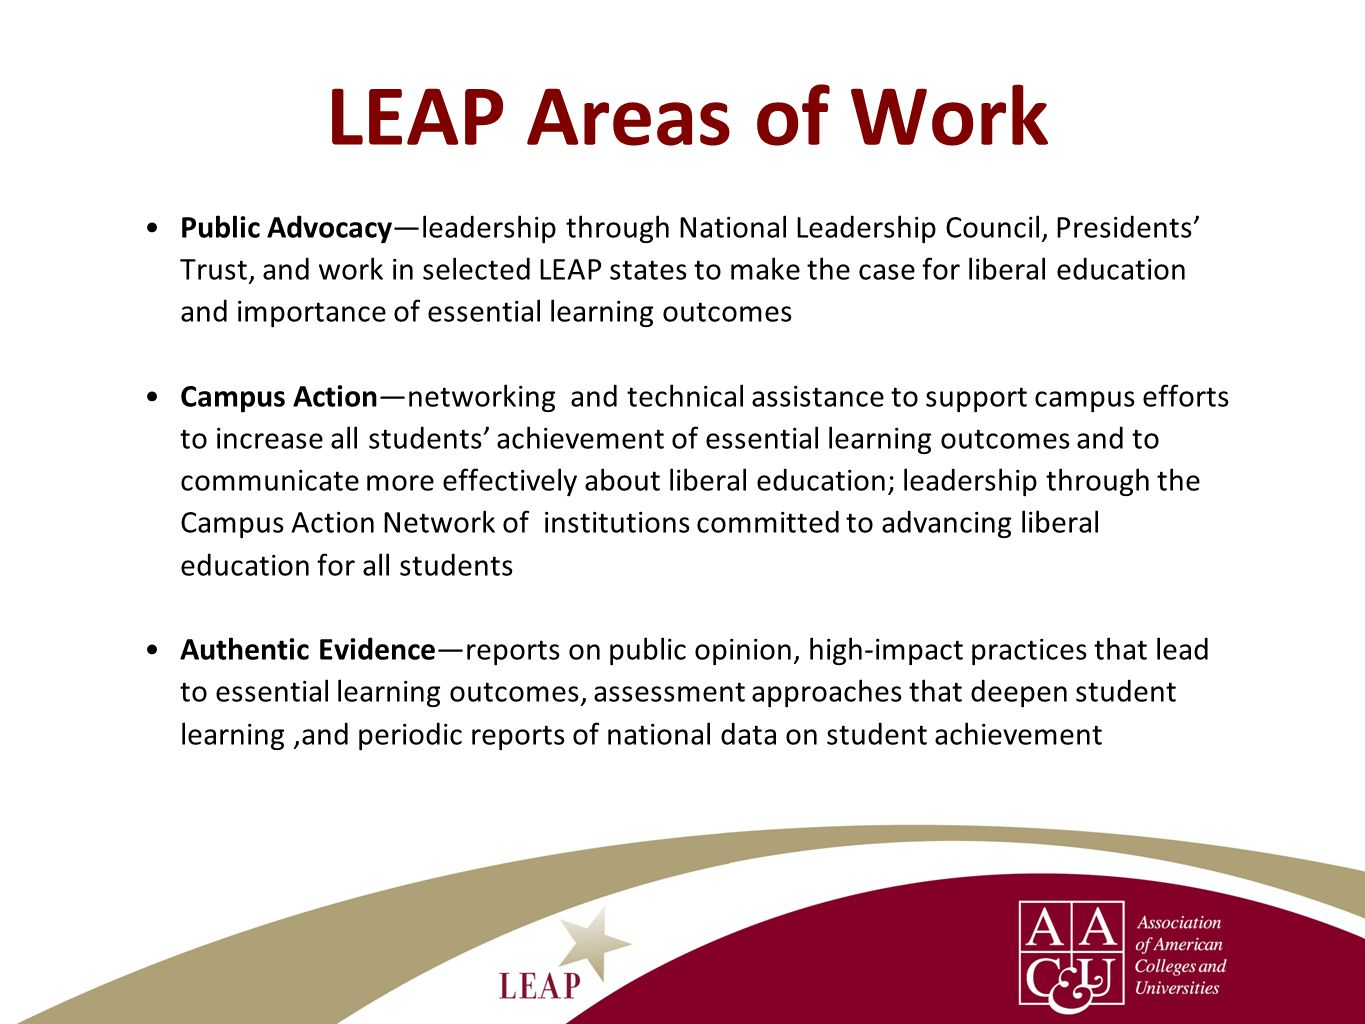 LEAP Areas of Work